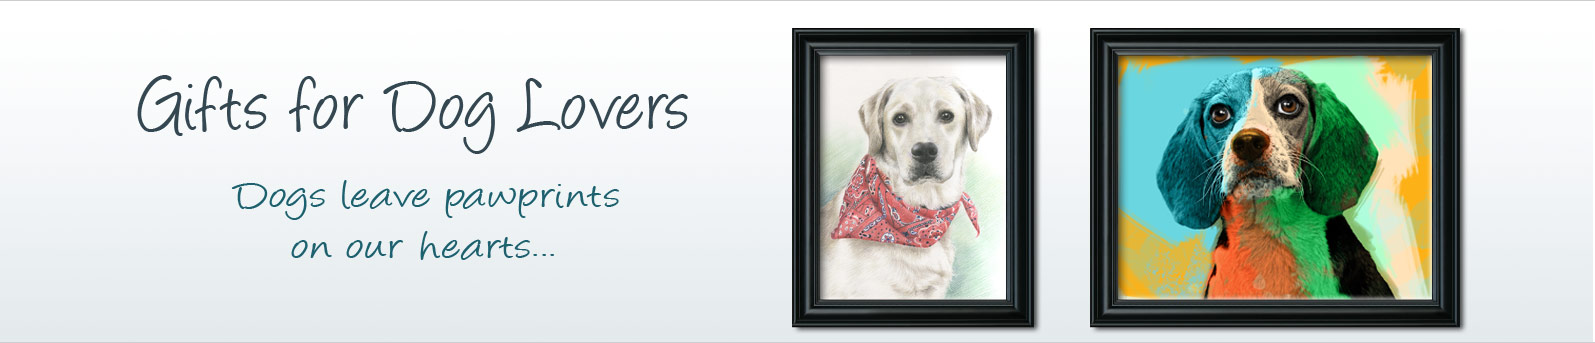 gifts for dog lovers dog lover gifts personalized dog gifts gift for